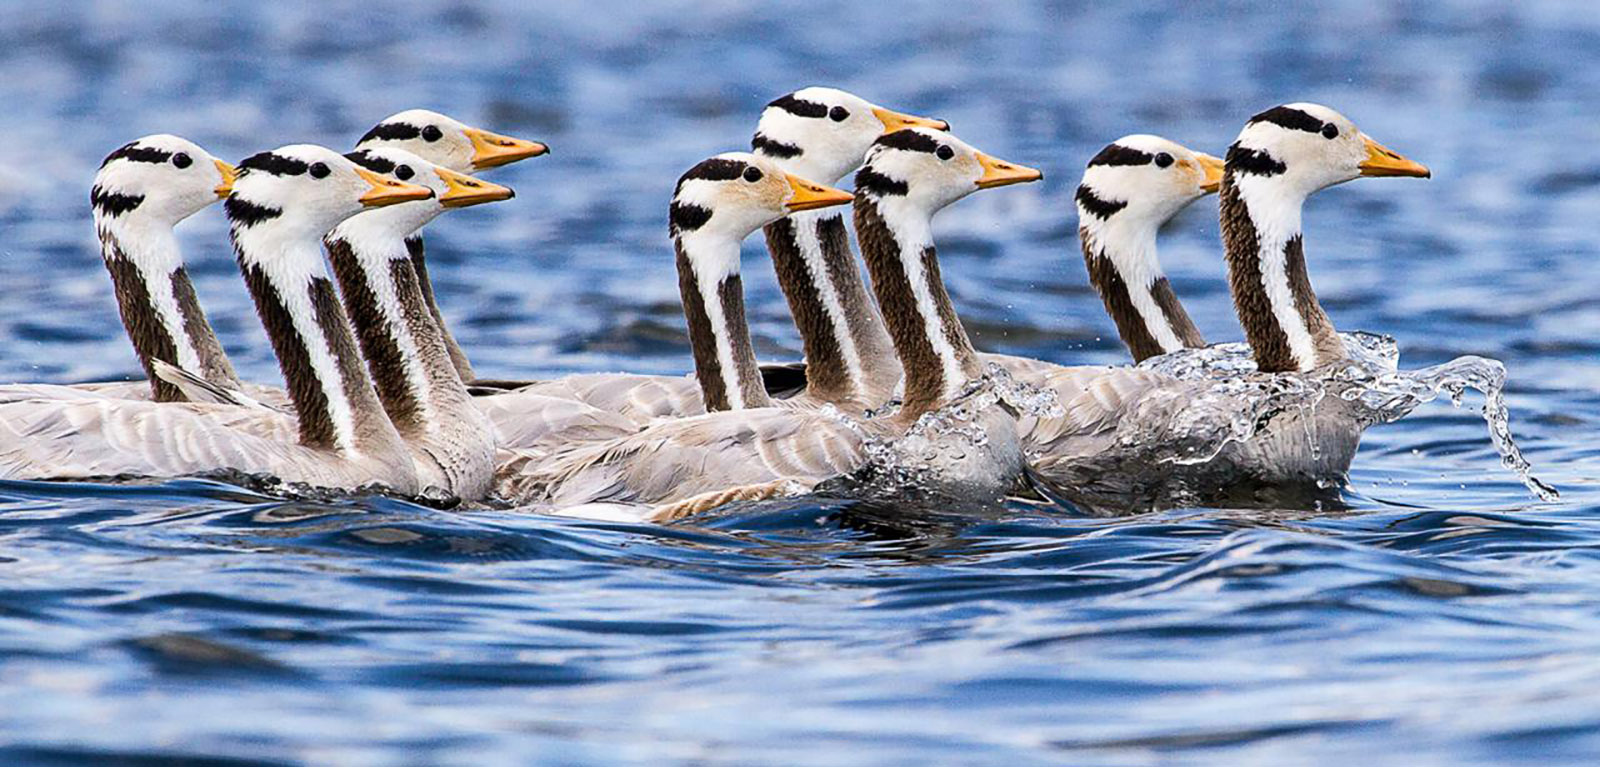 Bar-Headed Geese - Photo Courtesy of Bruce Moffat